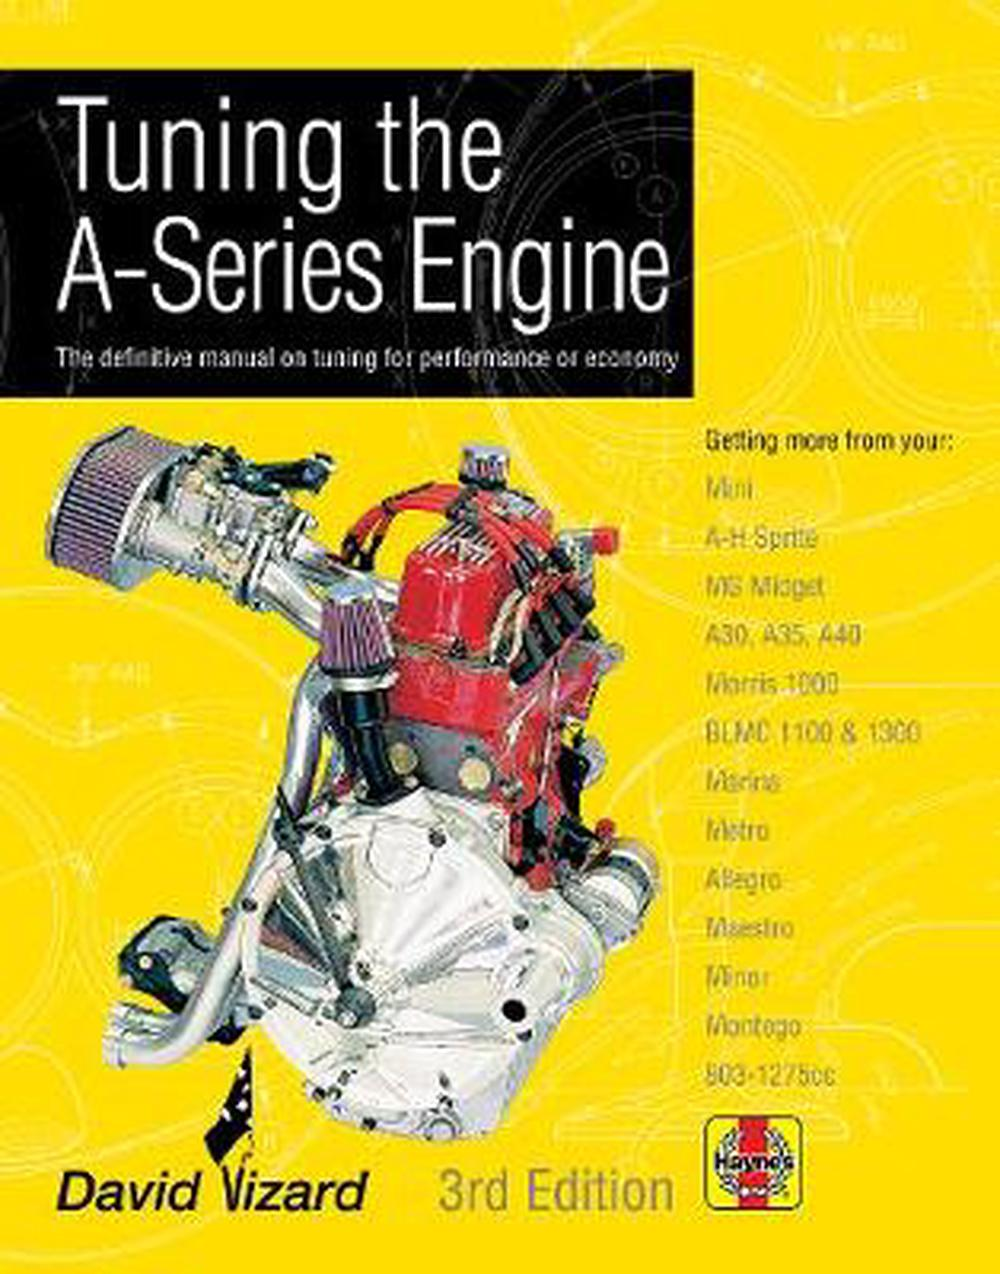 Tuning the A-Series Engine: The Definitive Manual on Tuning for Performance or Economy